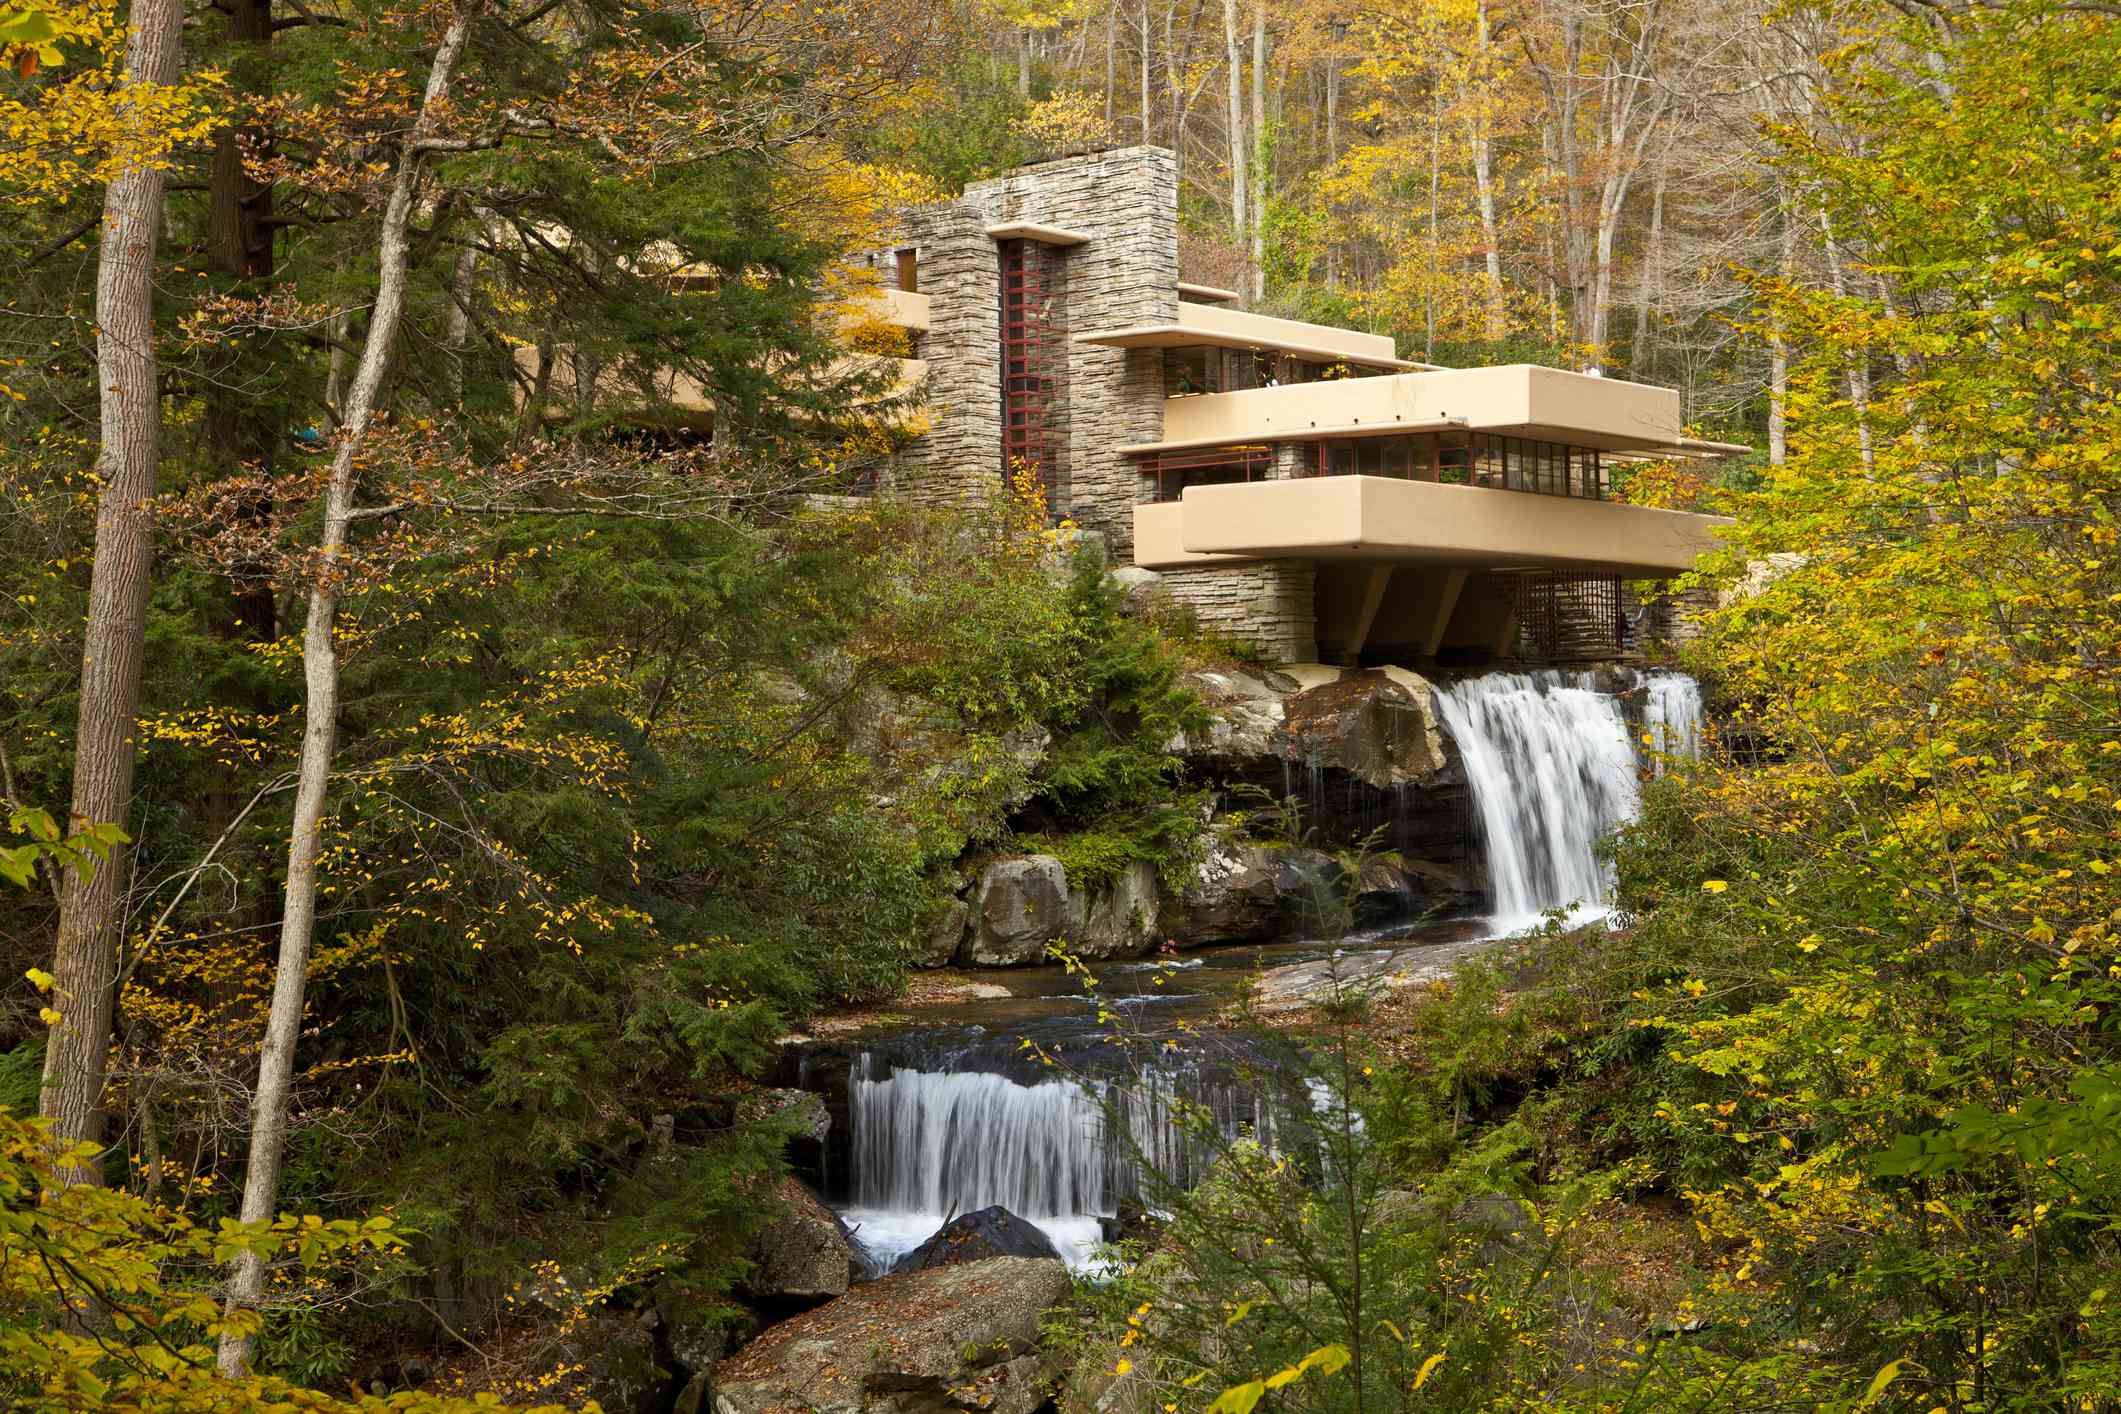 Falling Water House designed by Frank Lloyd Wright